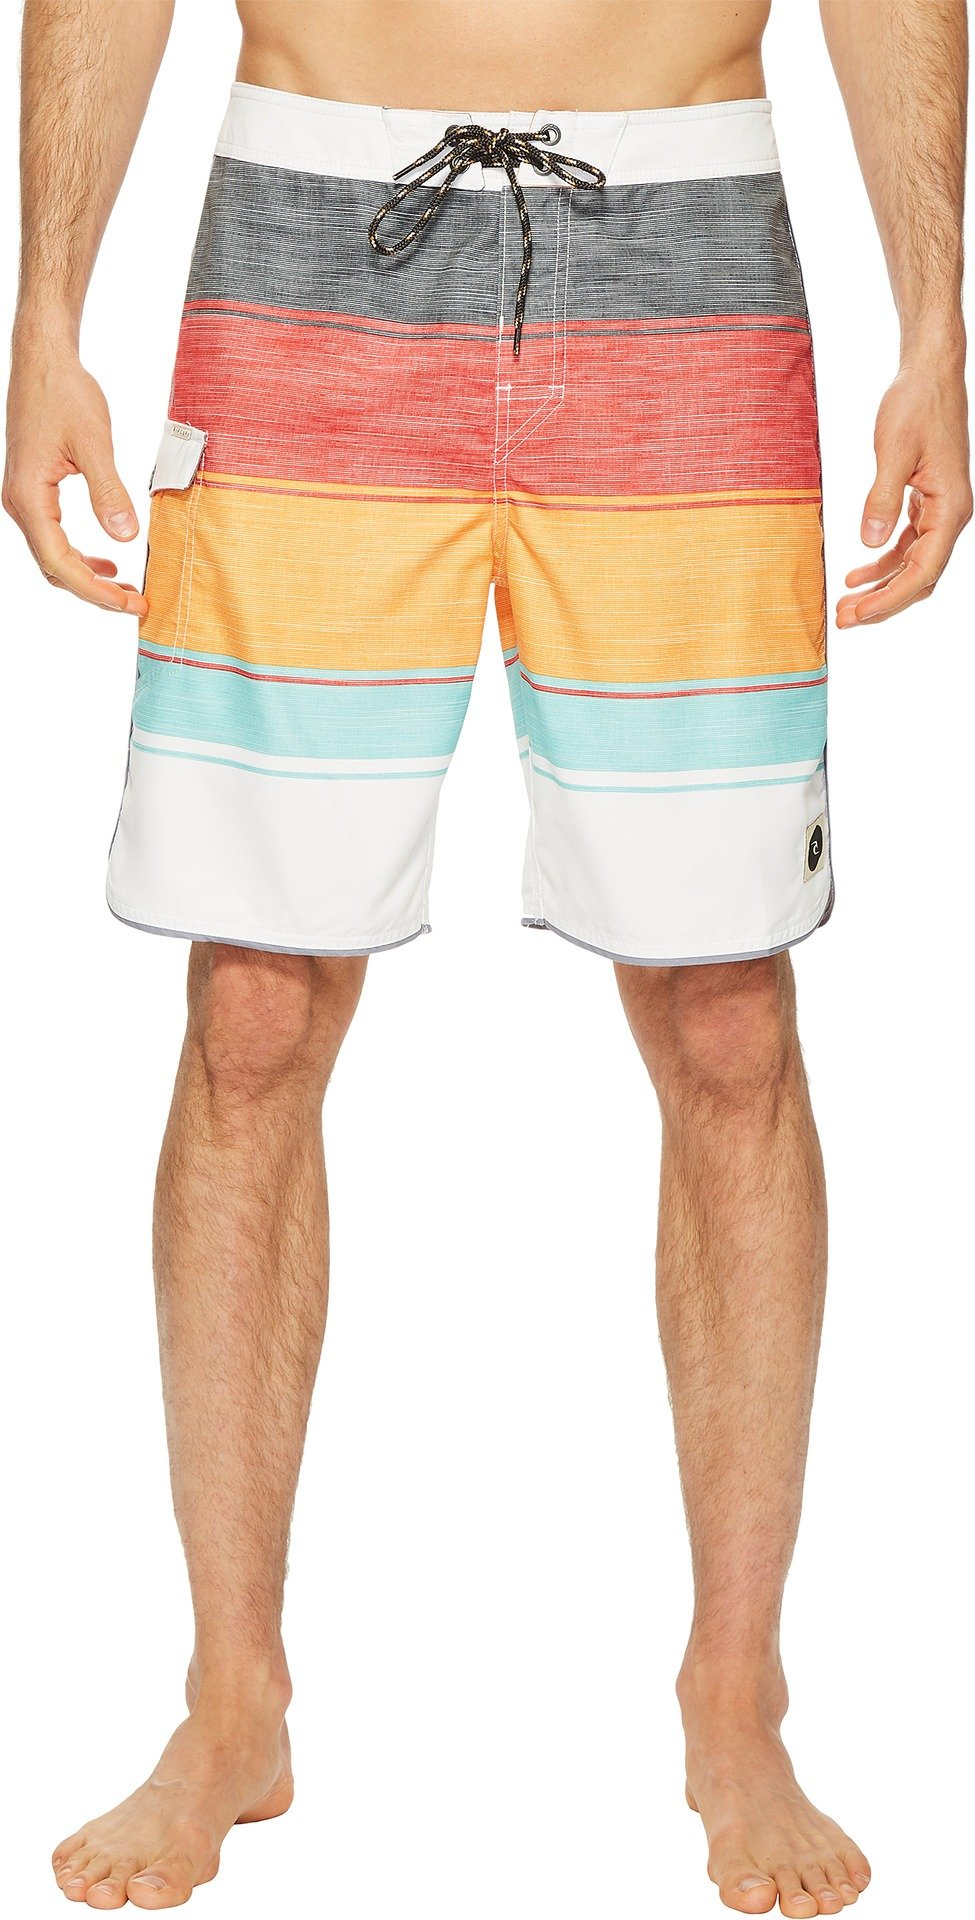 64c06a28e6 Cheap Rip Curl Boardshort, find Rip Curl Boardshort deals on line at ...